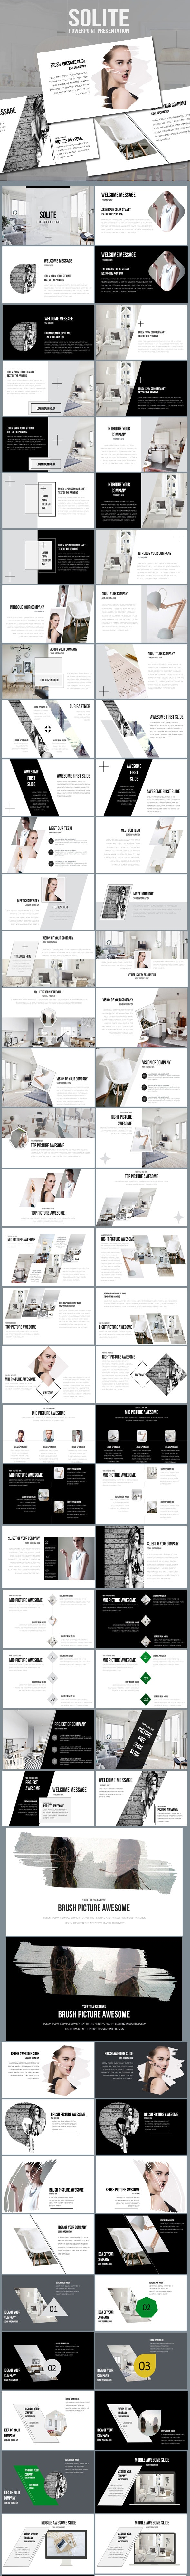 Solite Clear & Model Powerpoint Presentation - Business PowerPoint Templates